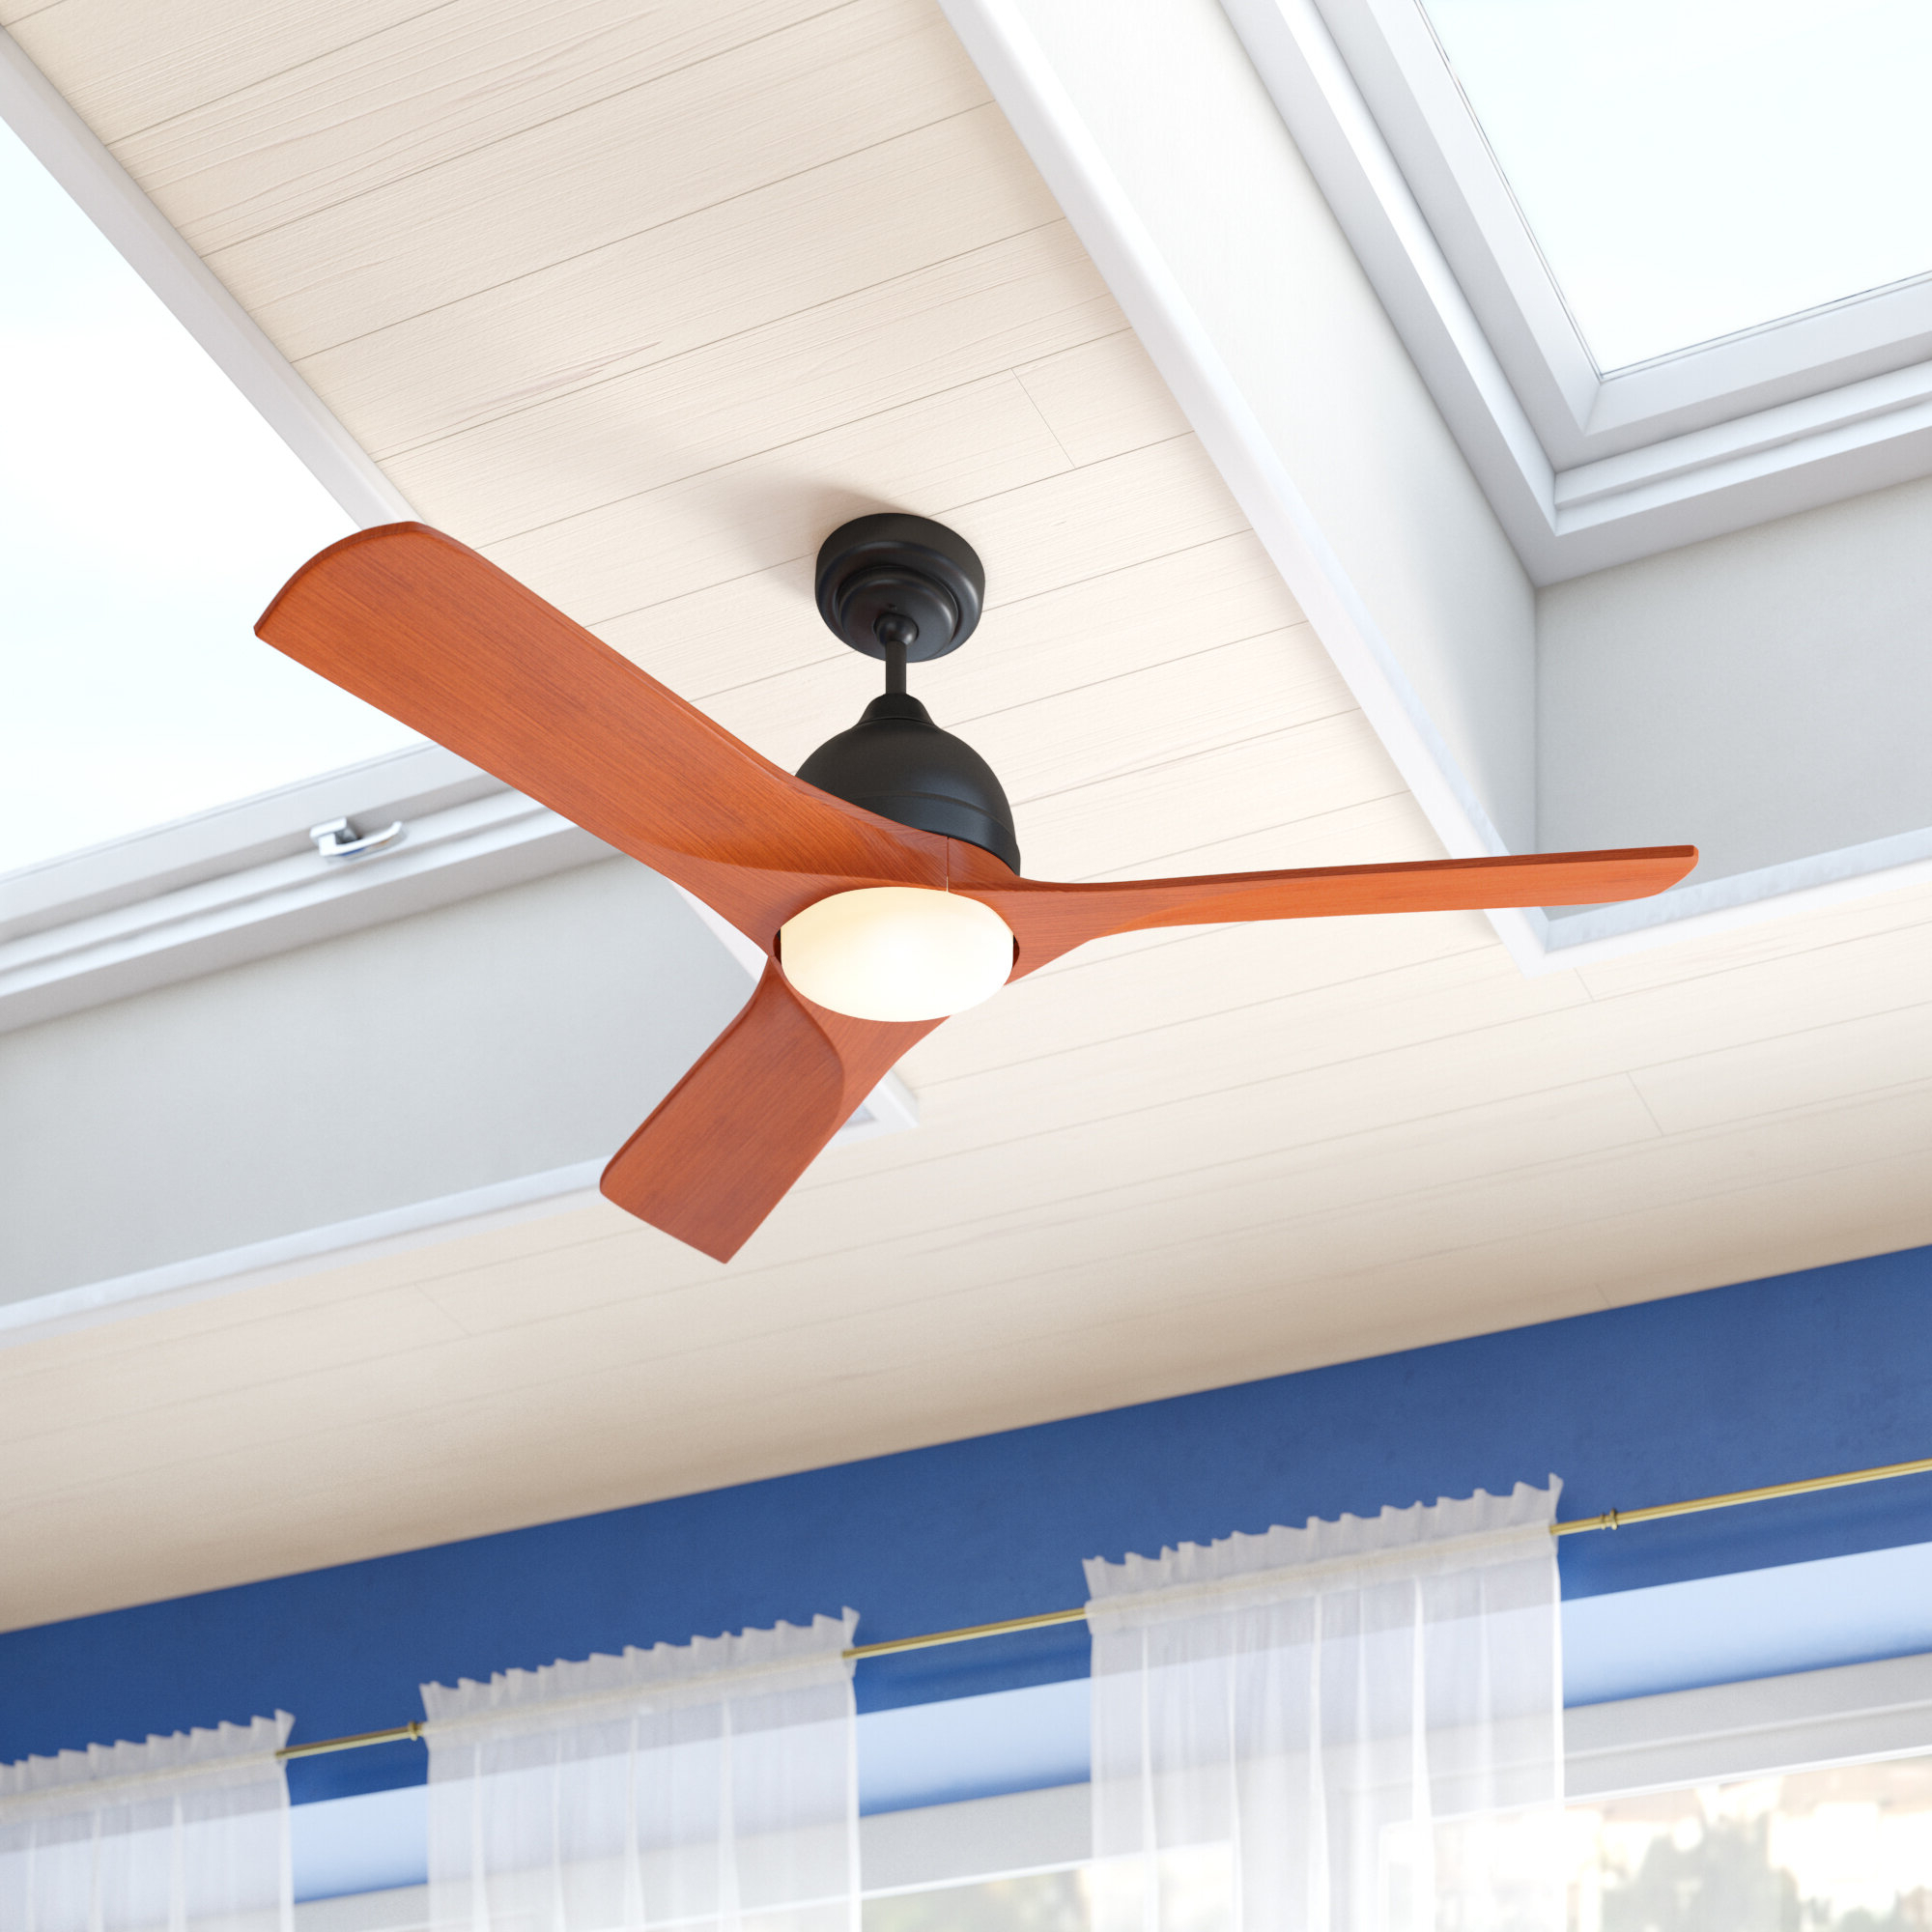 "Current Paige 3 Blade Led Ceiling Fans Inside 54"" Zilla 3 Blade Outdoor Led Ceiling Fan With Remote, Light Kit Included (View 4 of 20)"